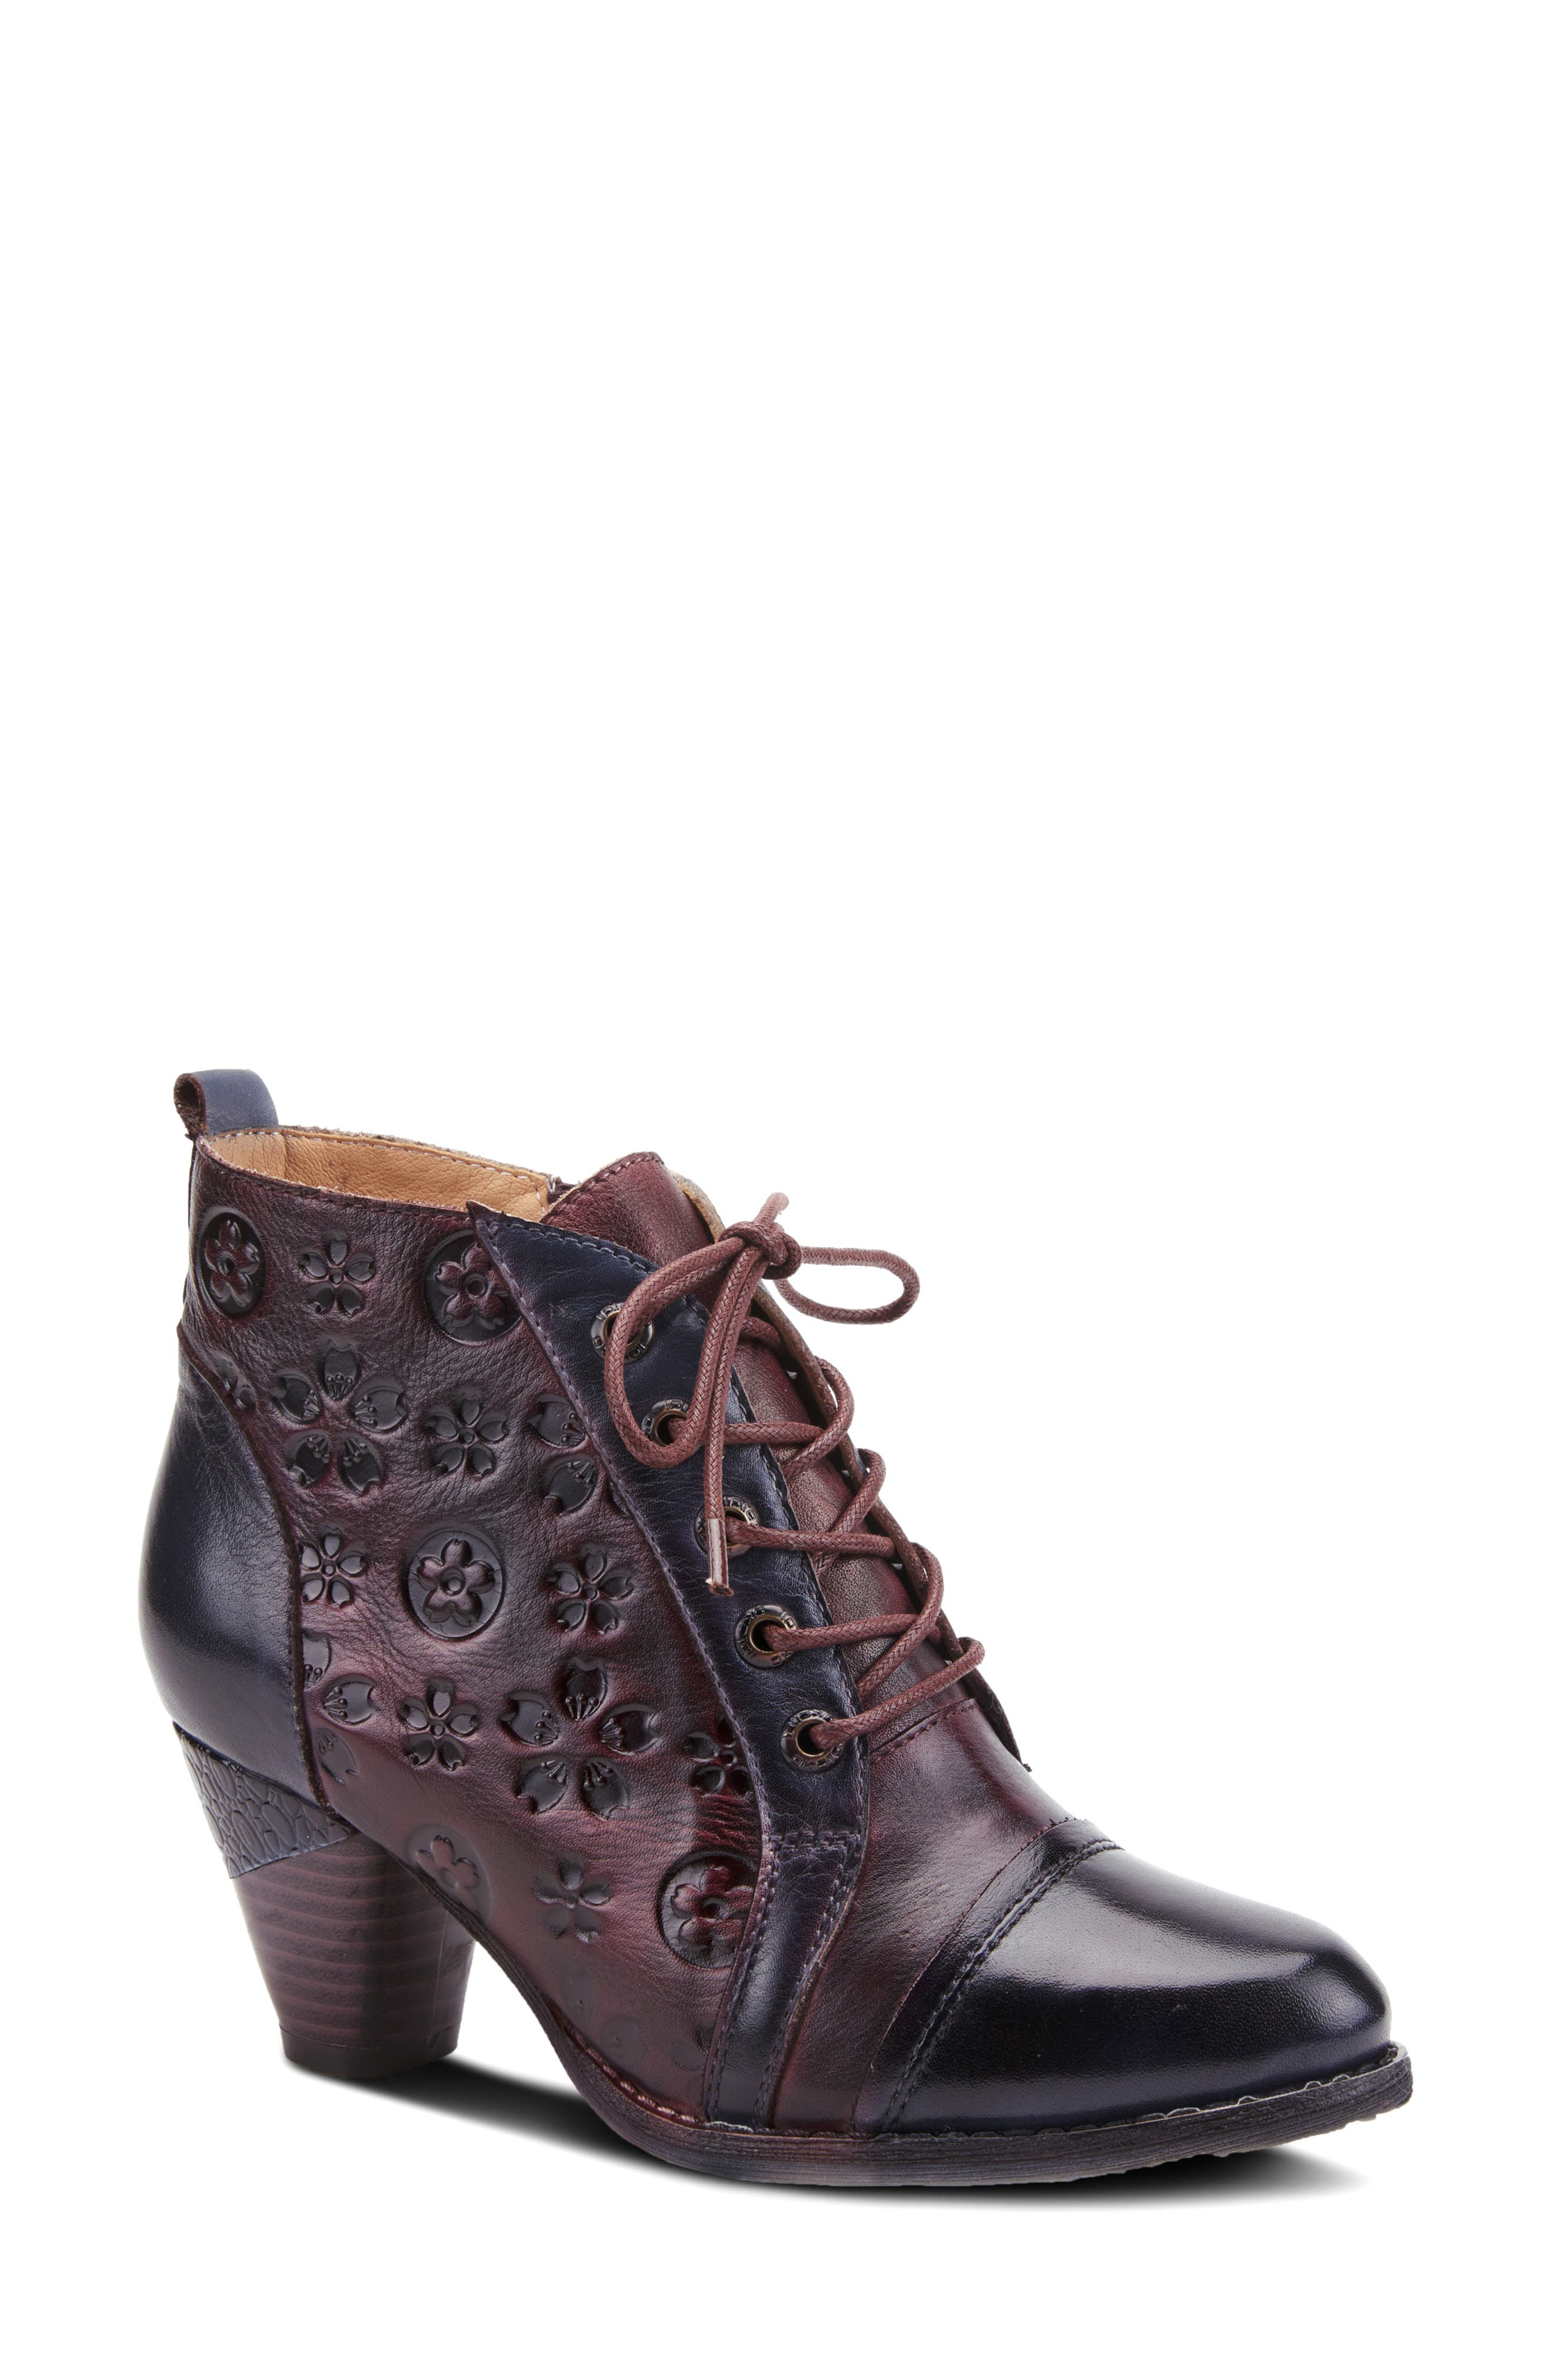 Flower-tooled leather with hand-painted accents defines this vintage-inspired bootie outfitted with a comfortably cushioned footbed. Style Name:L\\\'Artiste Lewi Lace-Up Bootie (Women). Style Number: 6117401. Available in stores.